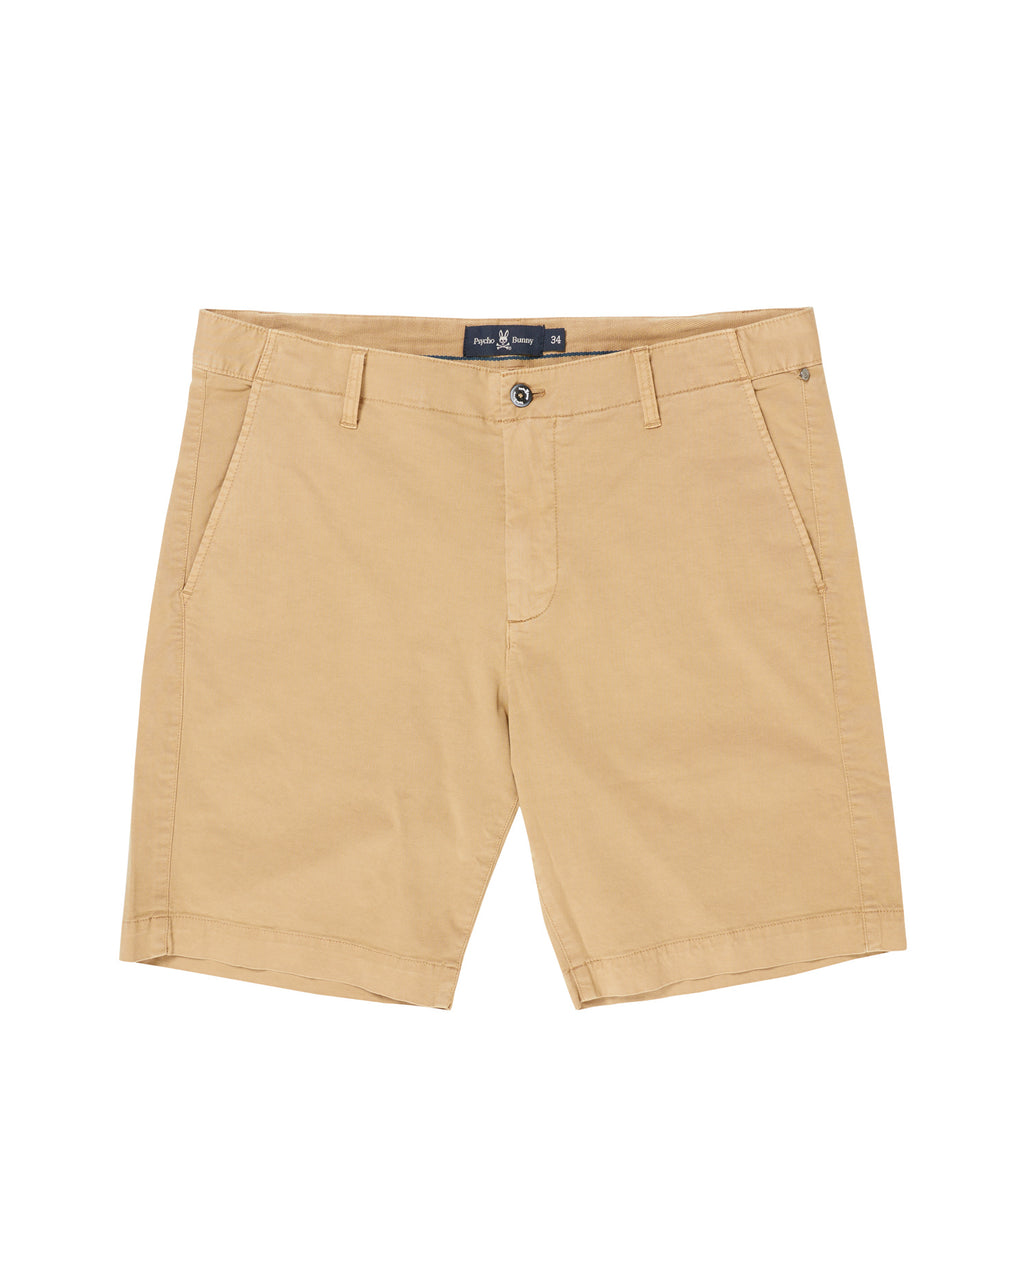 Psycho Bunny Men's Diego Shorts - British Khaki